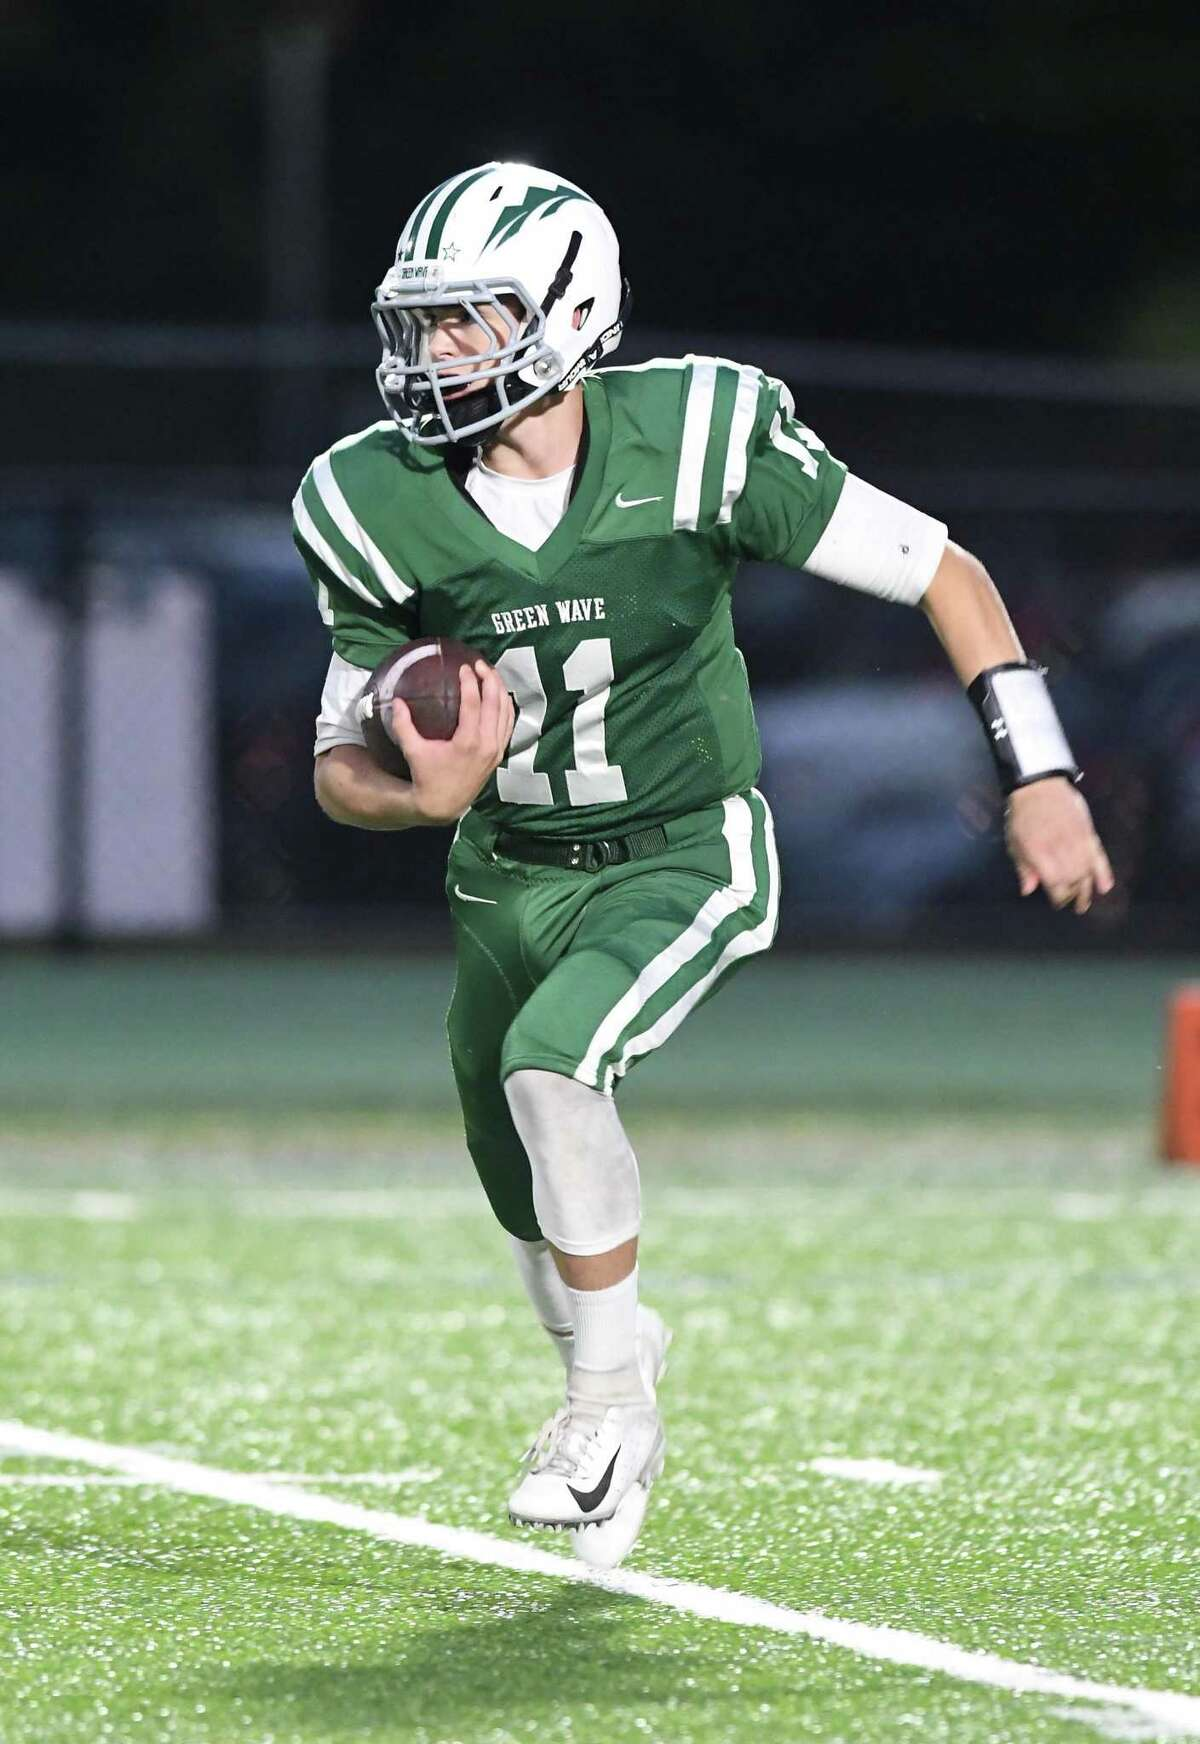 New Milford's Nathan Lawson will be one of senior quarterback JT Snowden's favorite targets this season.